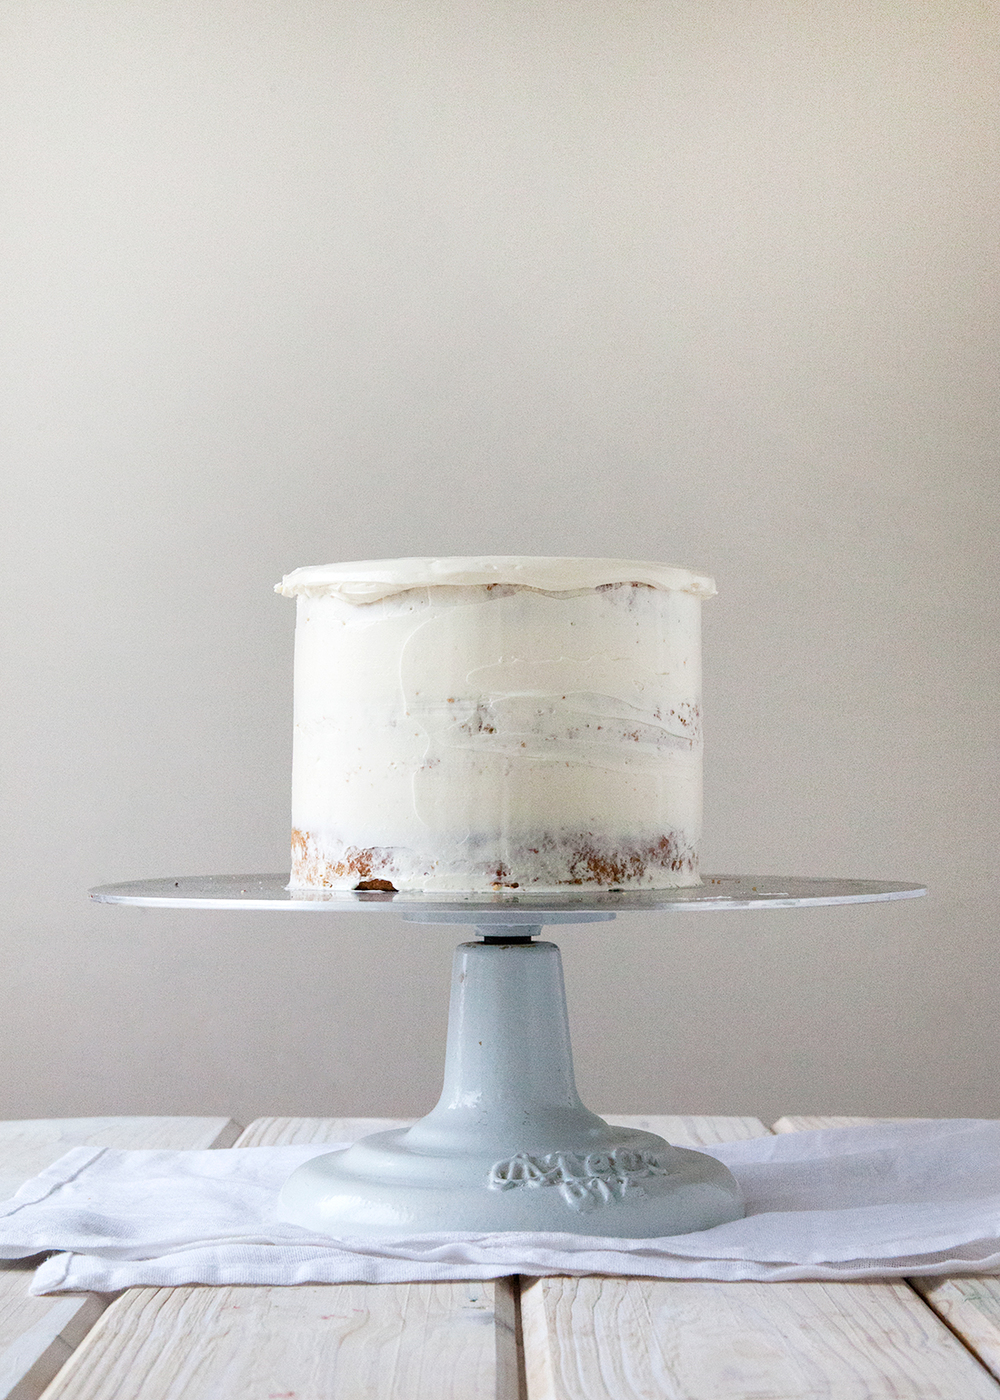 How To Ice A Cake The Perfect Ombre Style Sweet Ca